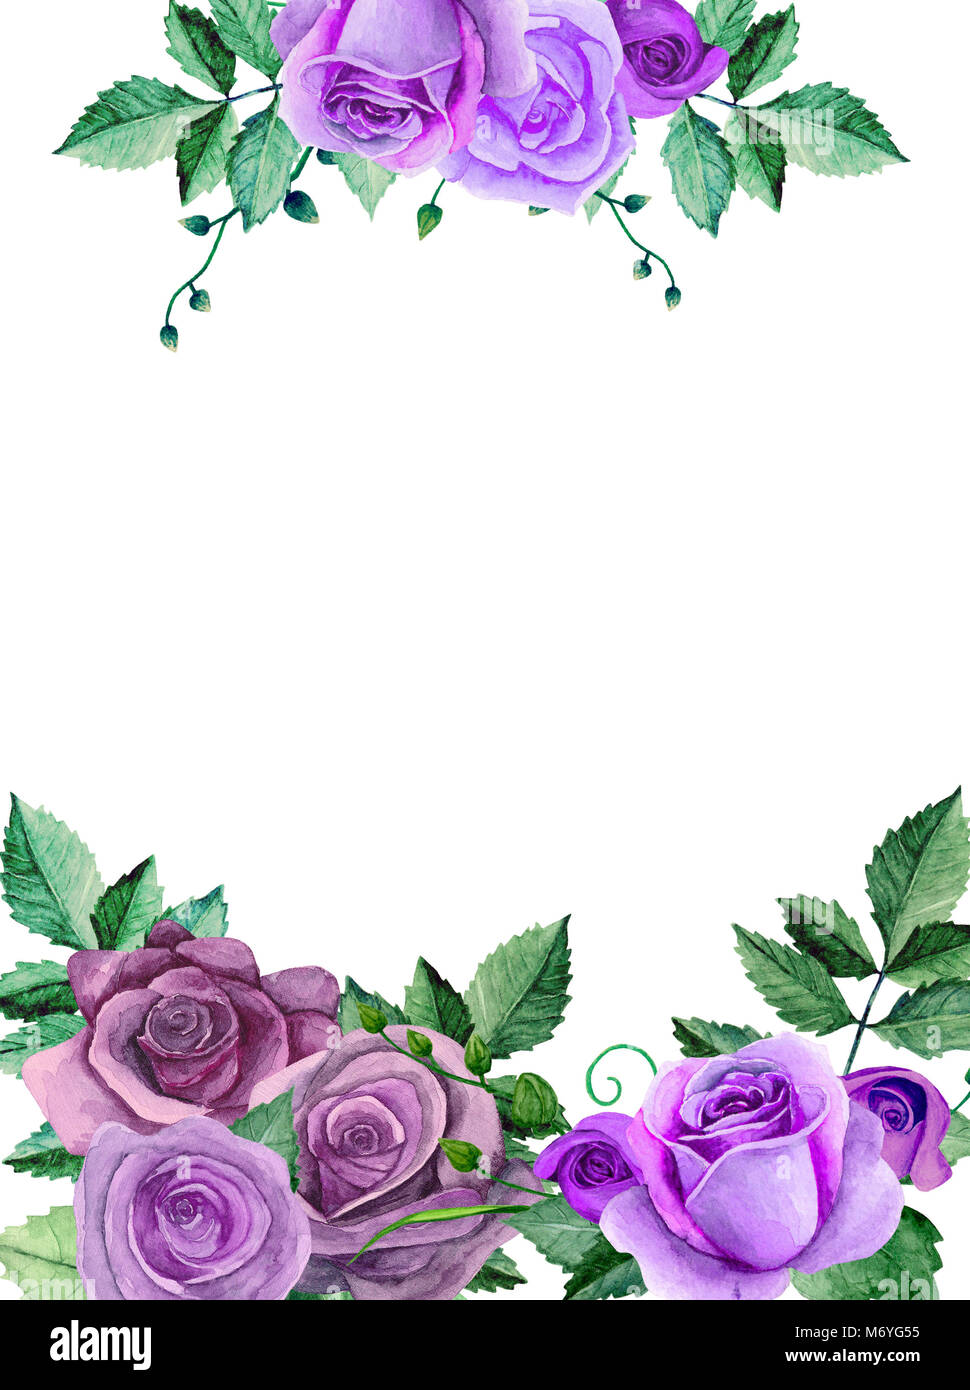 Watercolor roses purple flowers bouquet greeting card design stock purple flowers bouquet greeting card design template izmirmasajfo Images